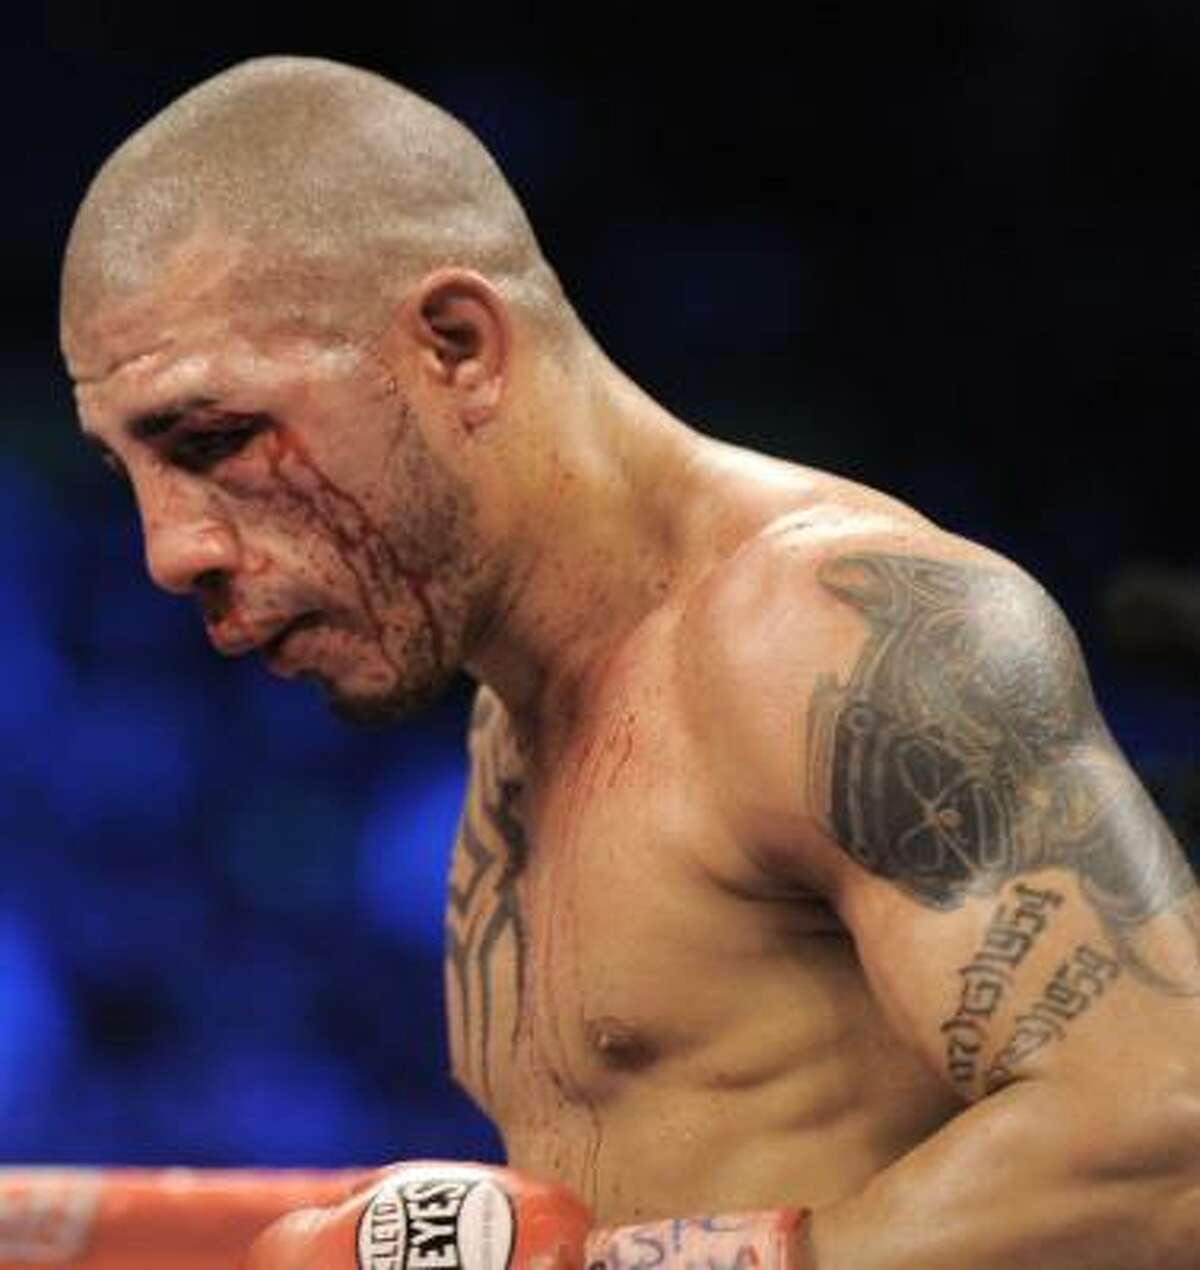 Miguel Cotto walks to his corner at the end of his fight against Manny Pacquiao.